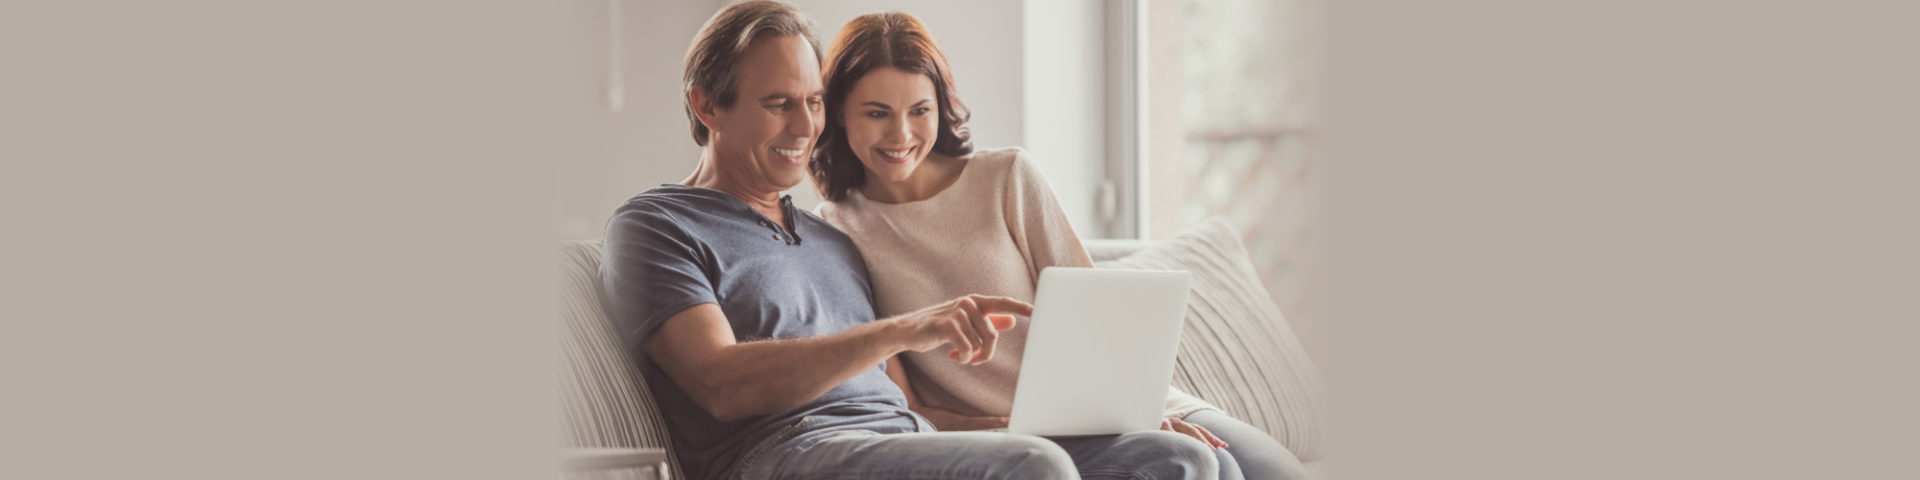 Beautiful couple is using a laptop and smiling while resting on couch at home